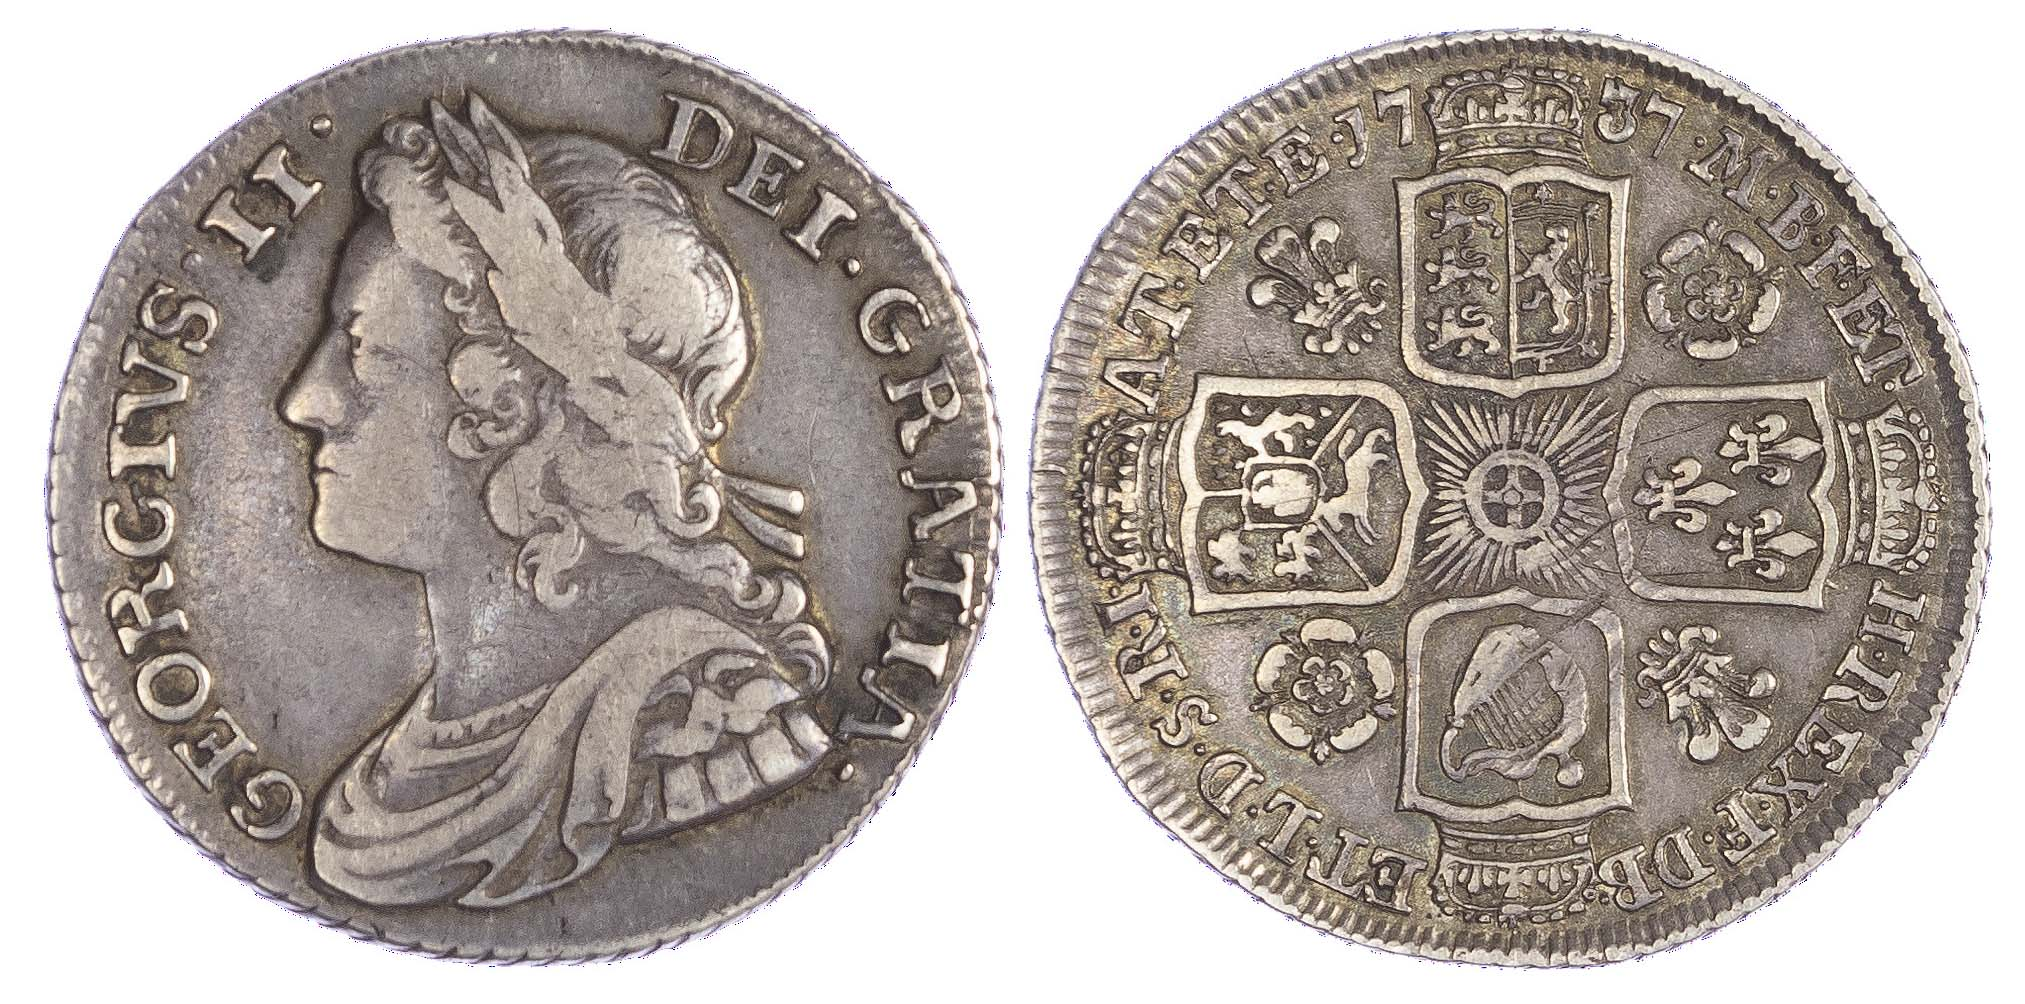 George II (1727-60), Shilling, 1737, 'Roses and Plumes'